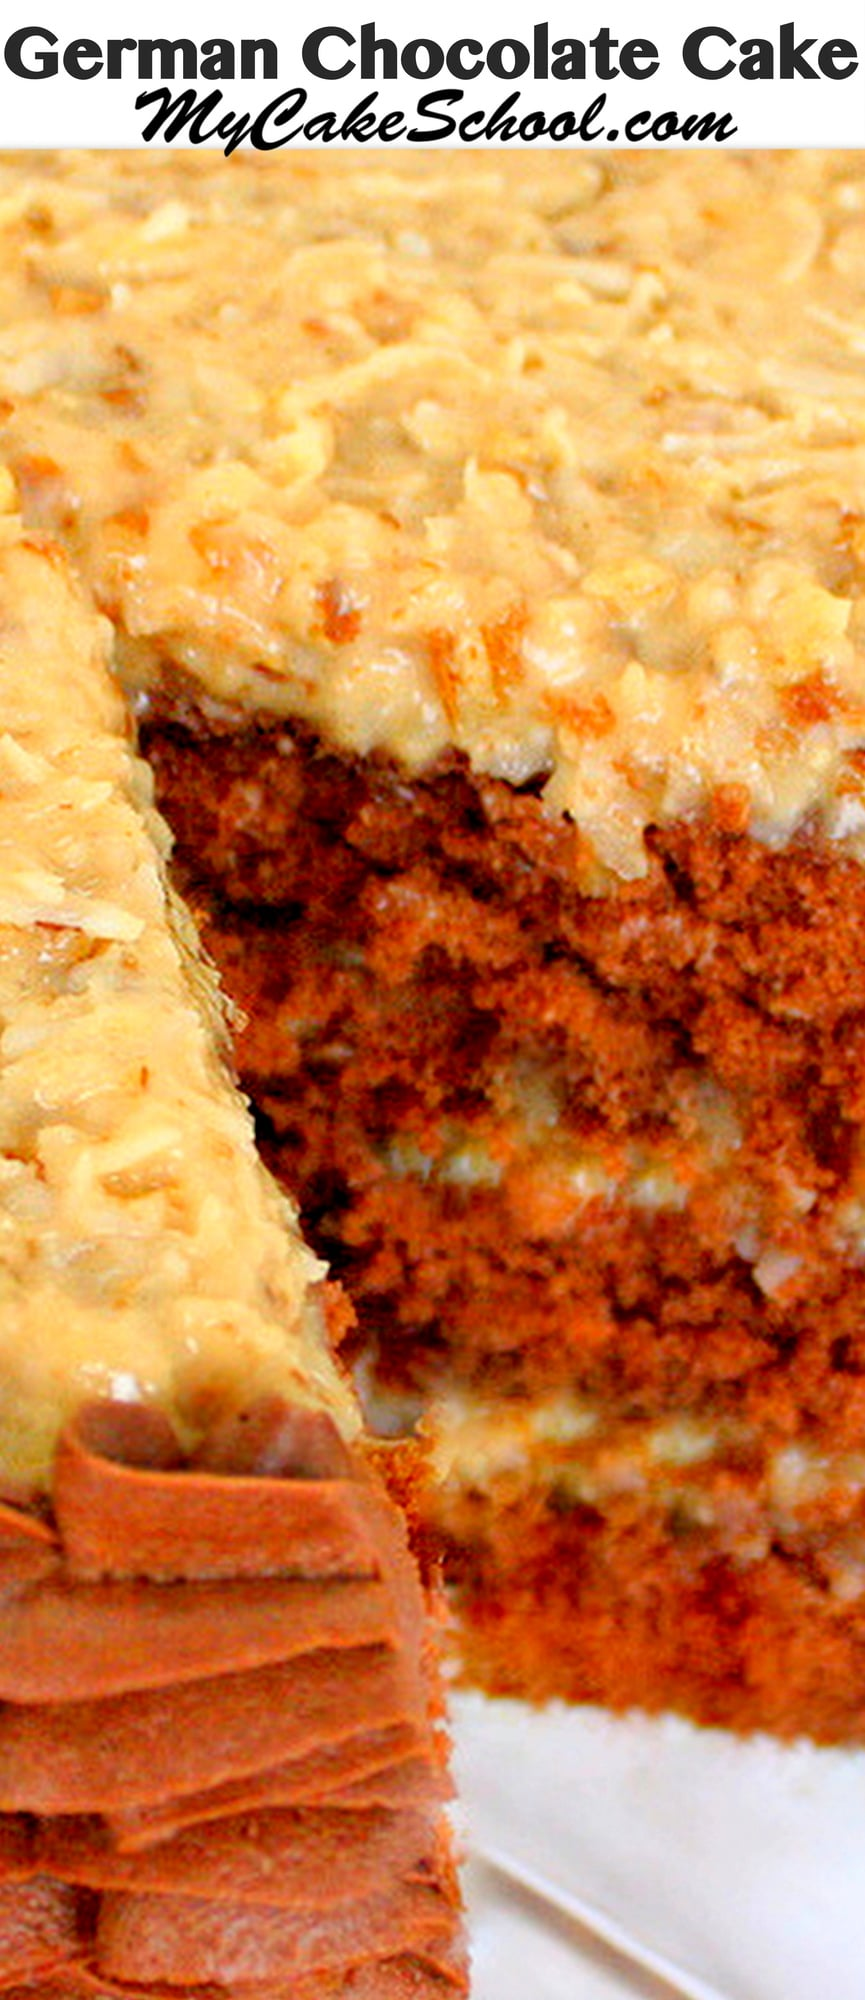 This homemade German Chocolate Cake recipe is AMAZING. Moist layers of German Chocolate Cake with a flavorful coconut pecan filling. There's nothing better!